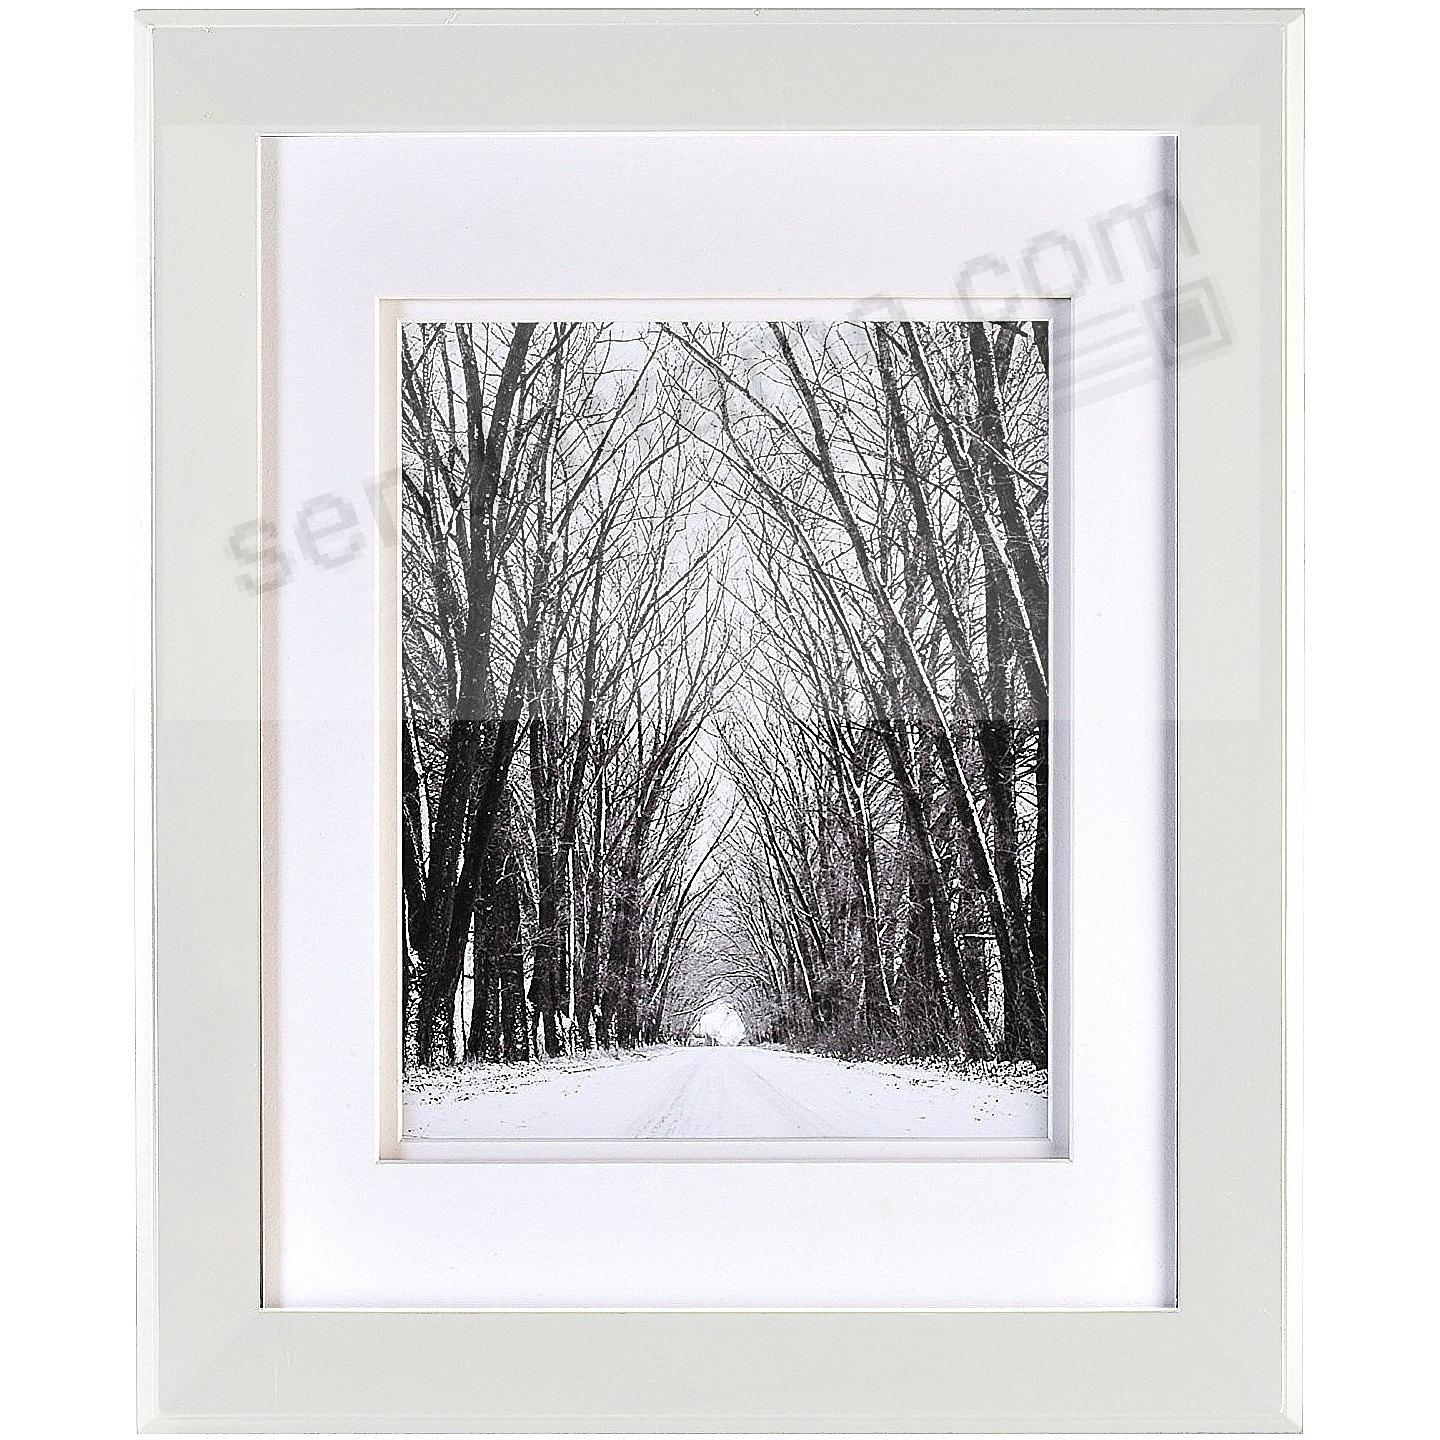 CHELSEA White Wood 11x14/8x10 DBL-Matted Frame from ARTCARE® by Nielsen®